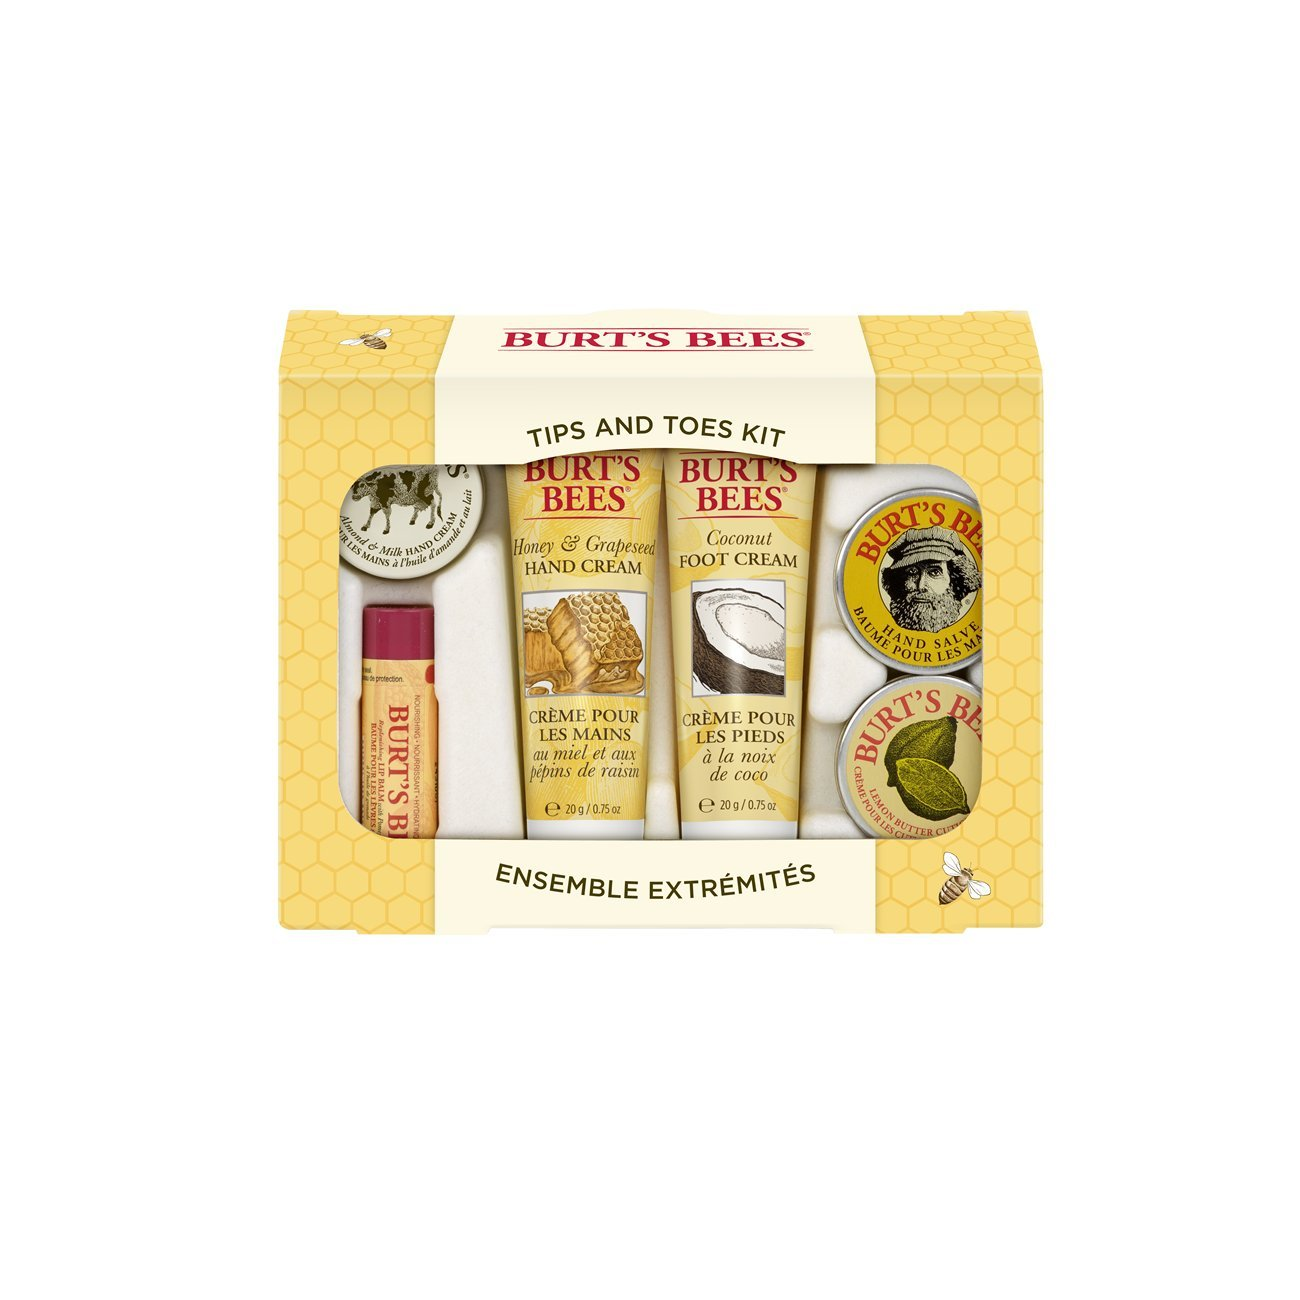 Burt's Bees is an American personal care products company that markets its products internationally. The company is a subsidiary of Clorox that describes itself as an